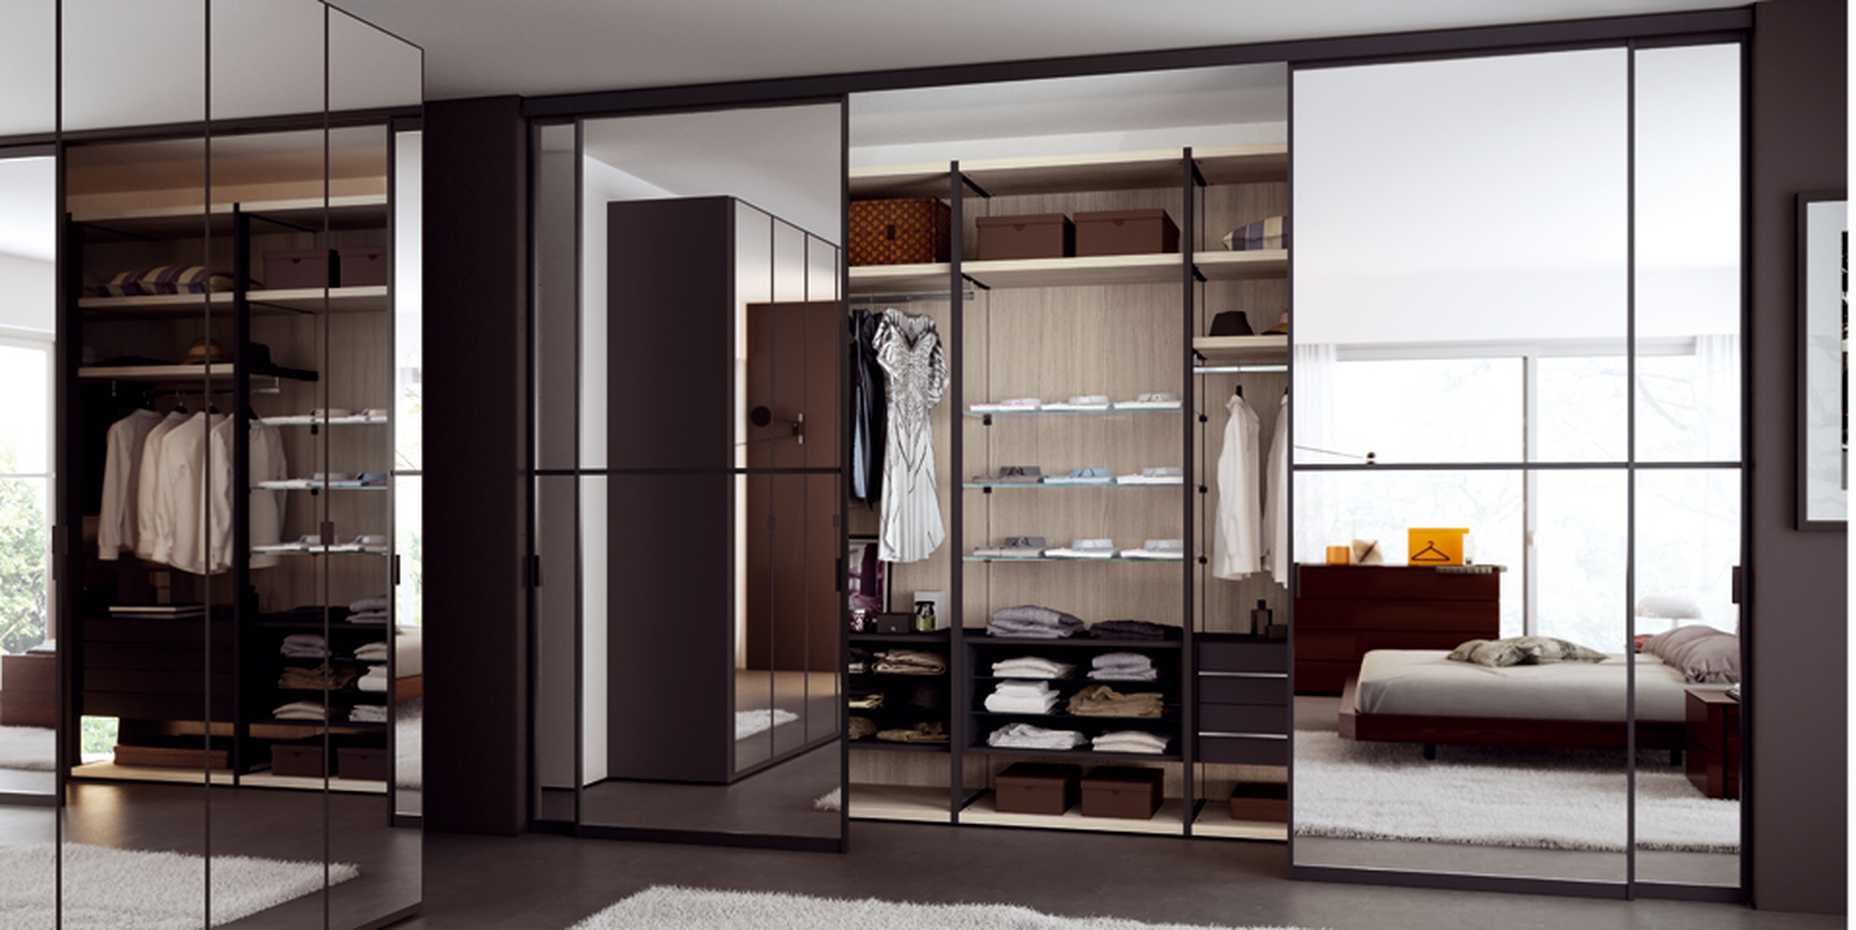 Walk-in Wardrobe with Framed Side by Mercantini product image 10